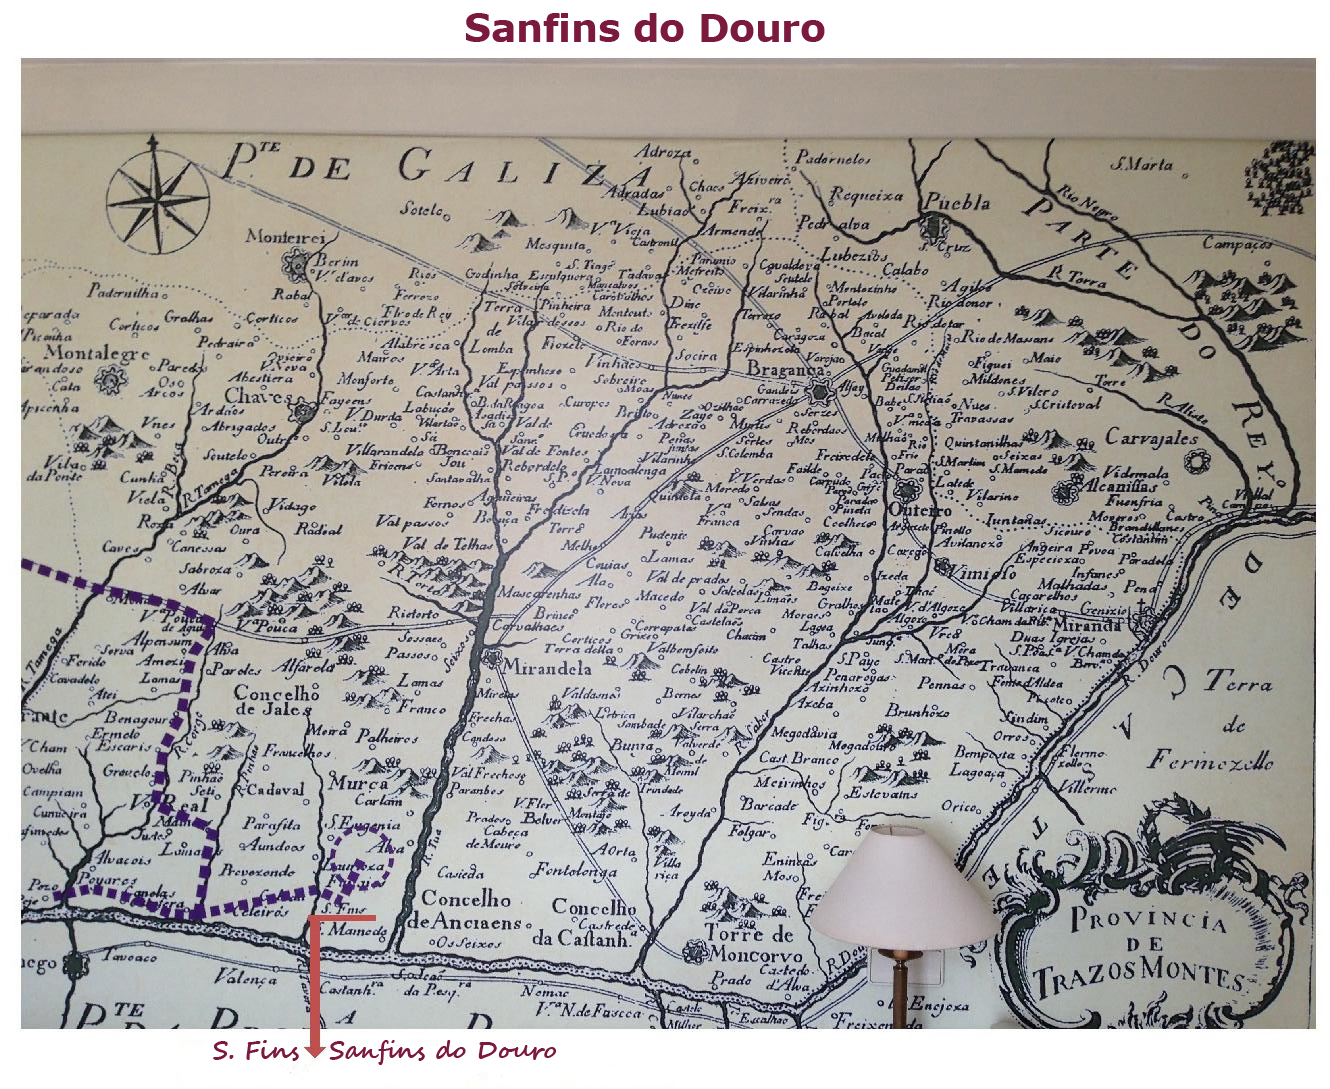 sanfins do douro mapa Sanfins do Douro: Sanfins do Douro (S. Fins) sanfins do douro mapa